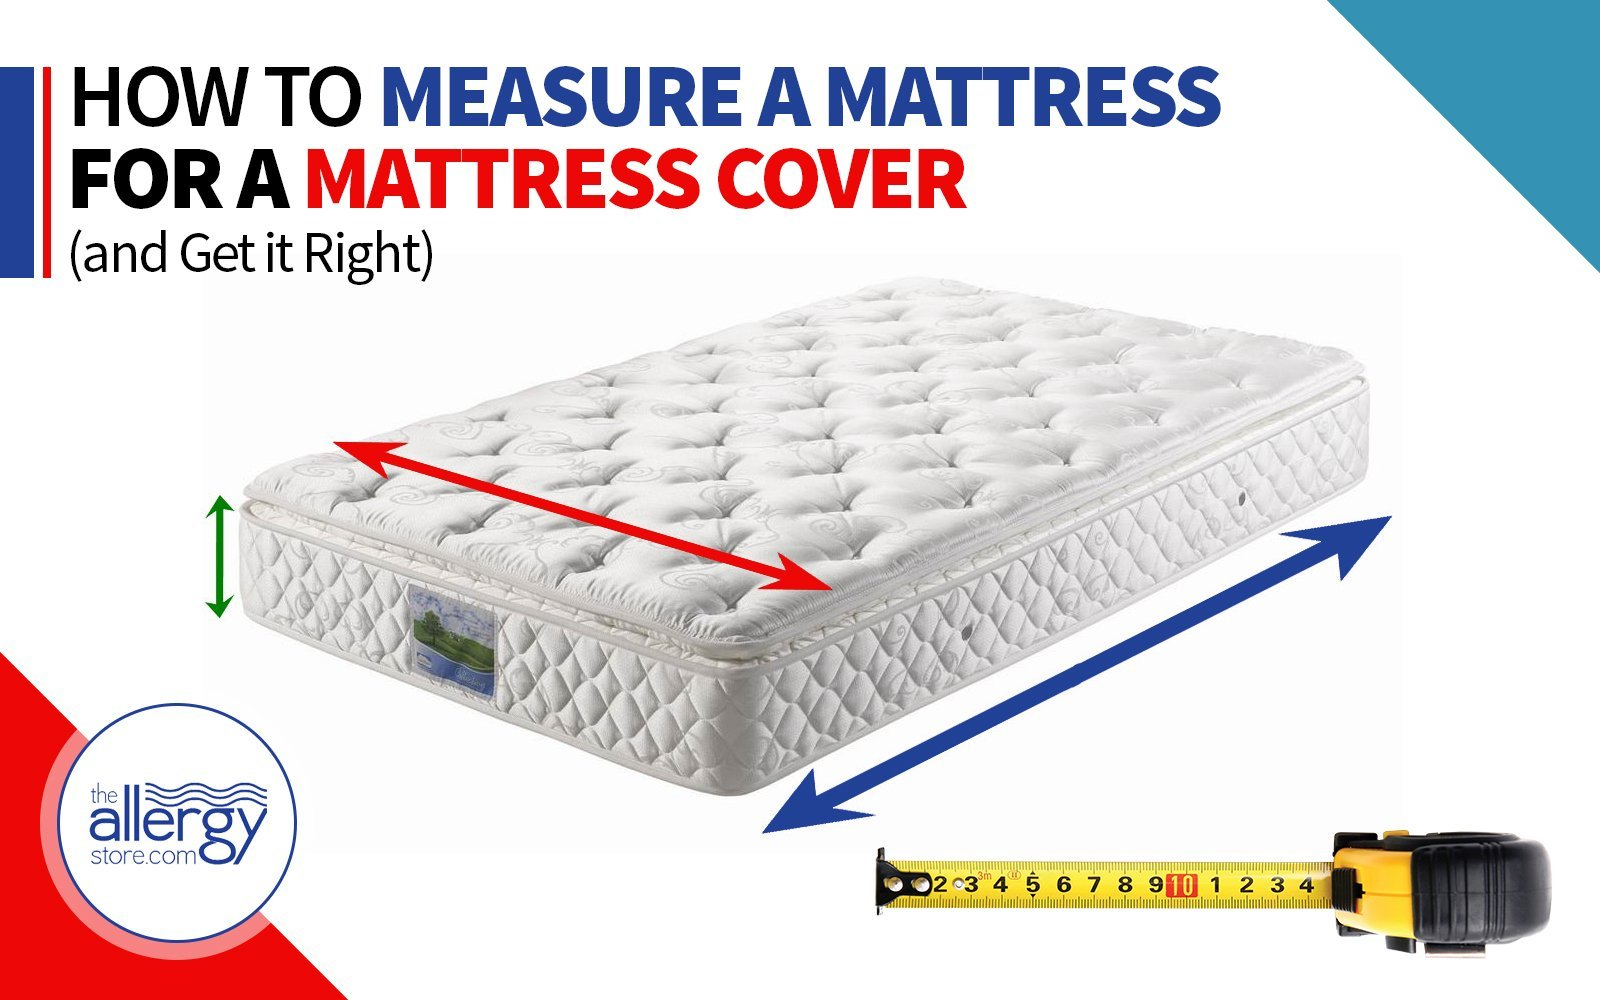 How to Measure a Mattress for a Mattress Cover